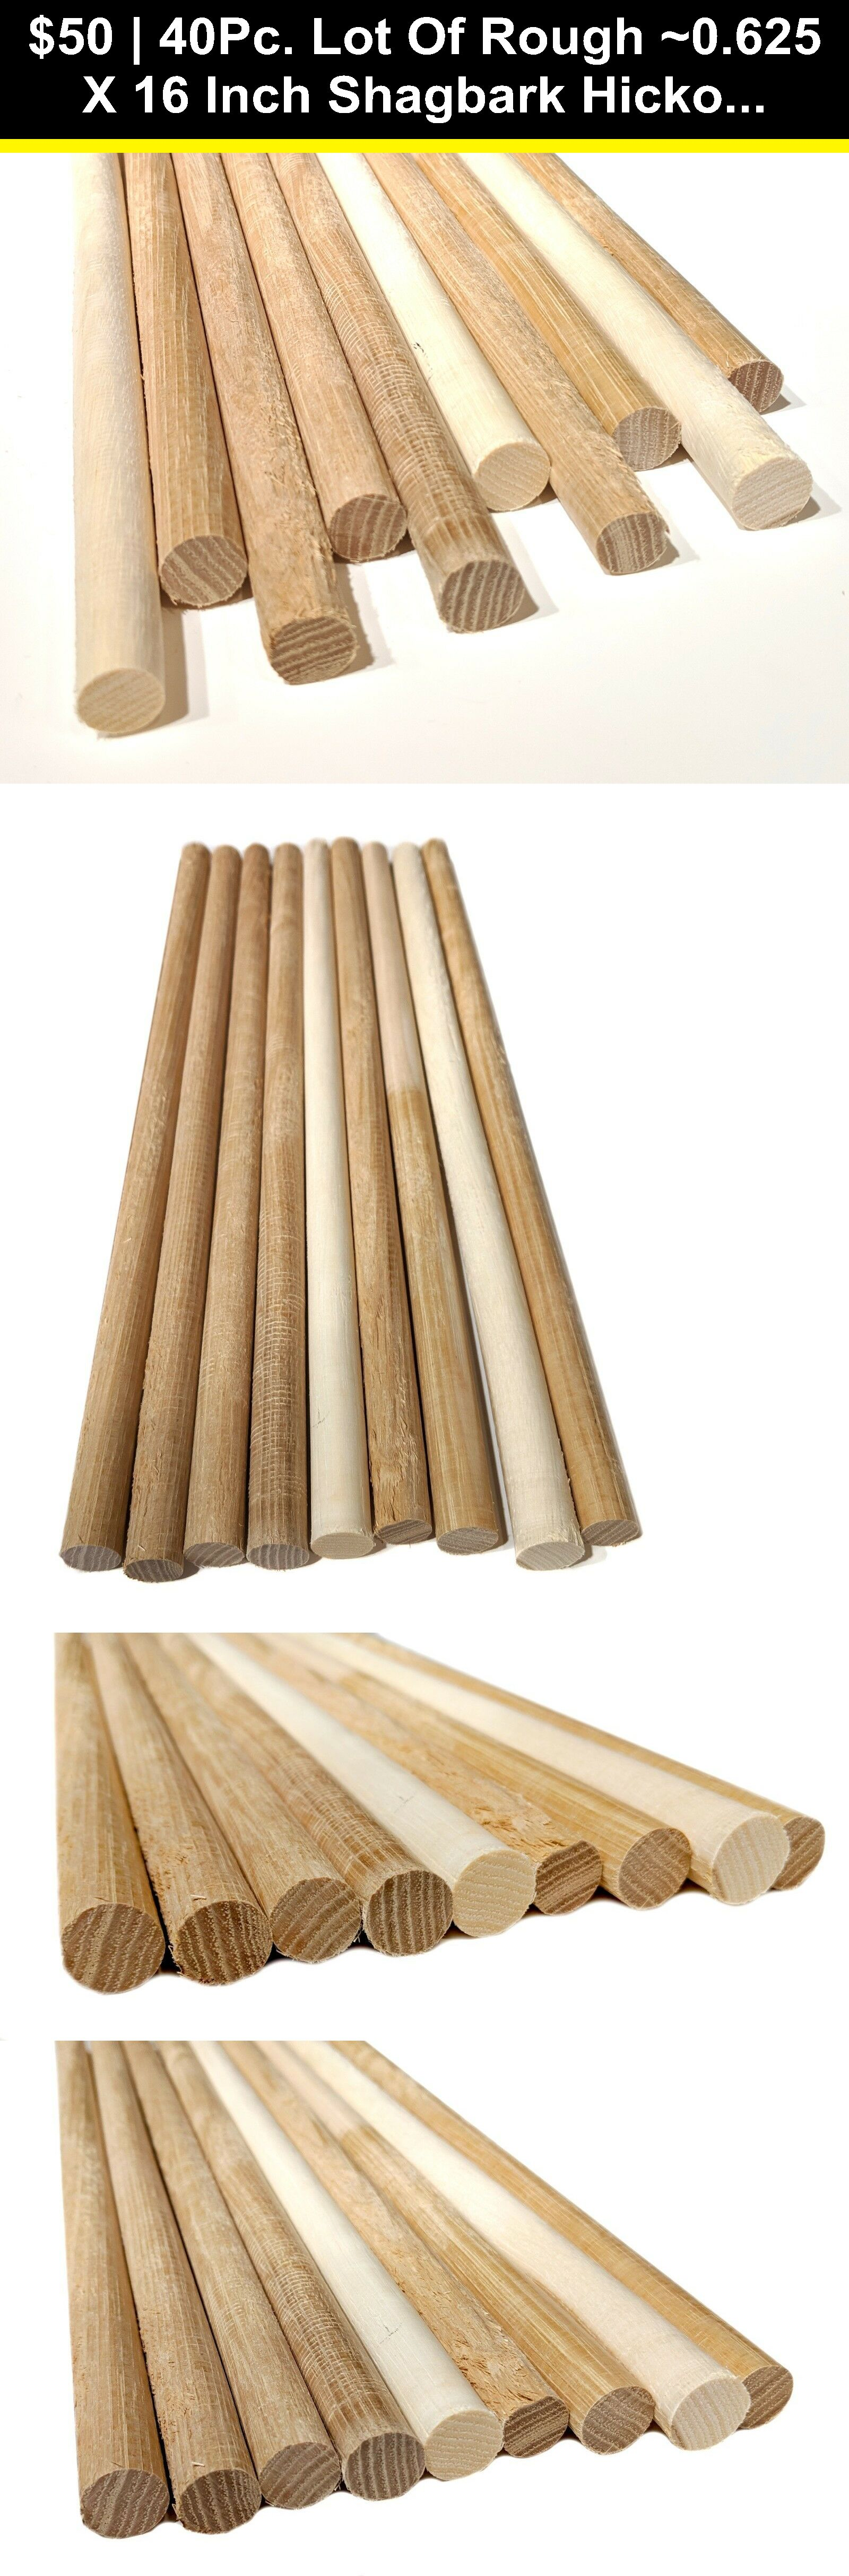 Dowels 183158 40pc Lot Of Rough 0 625 X 16 Inch Shagbark Hickory Dowels Dowel Rods Pegs Buy It Now Only 50 On Ebay Dowels Rough Sha Peg Rods Dowels